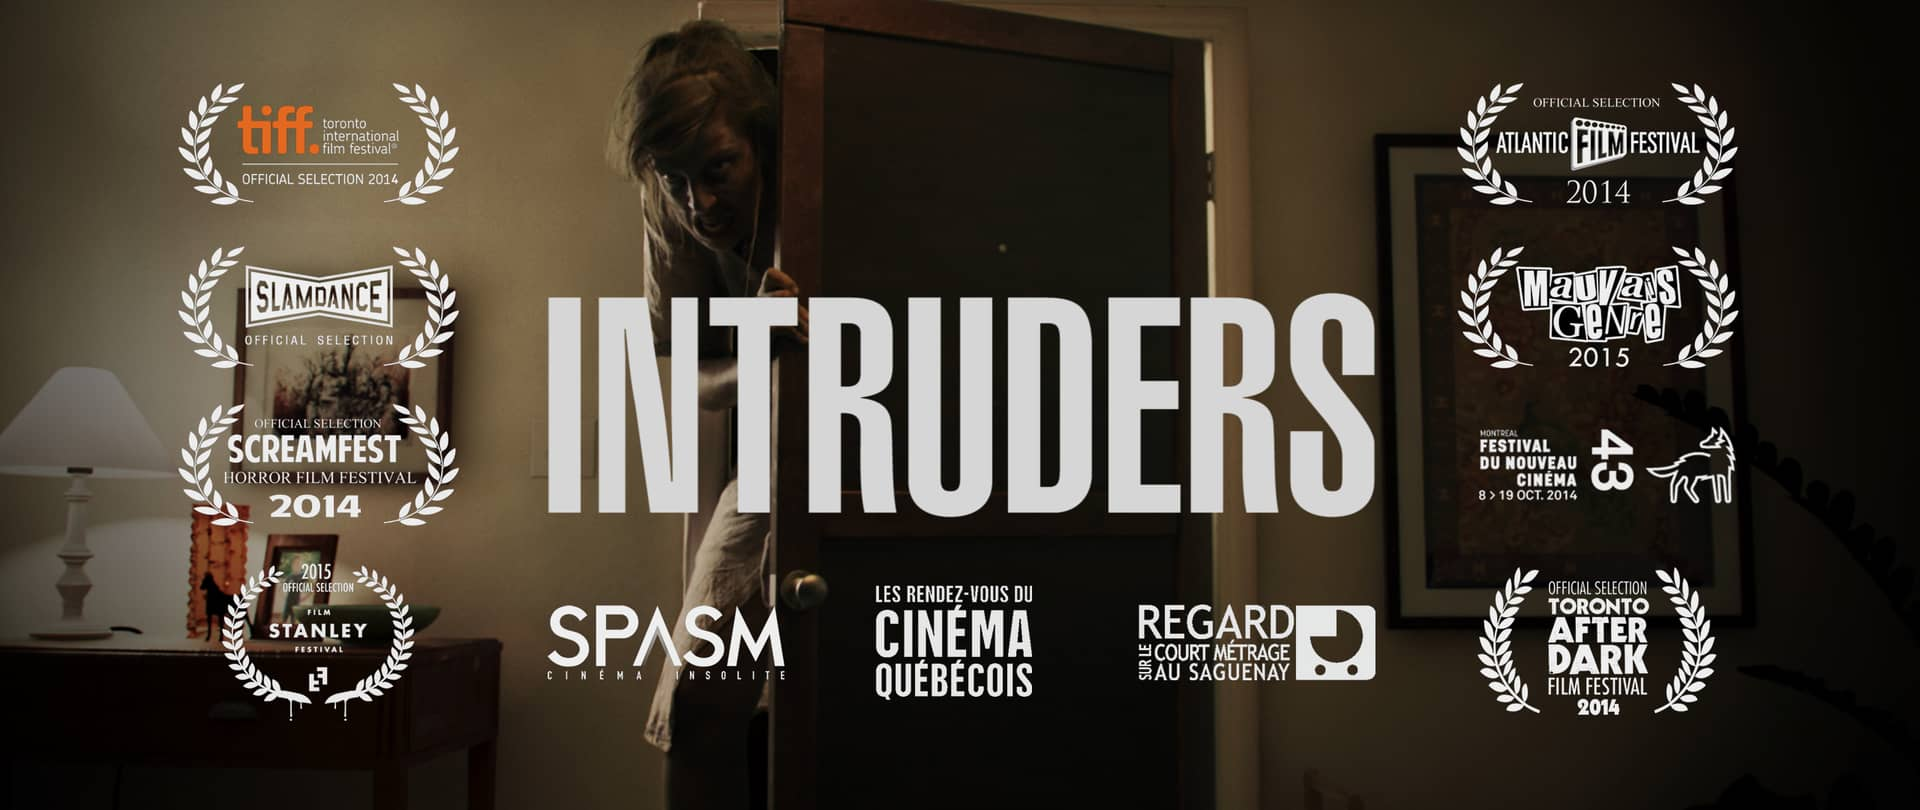 HQ Intruders Wallpapers | File 101.35Kb